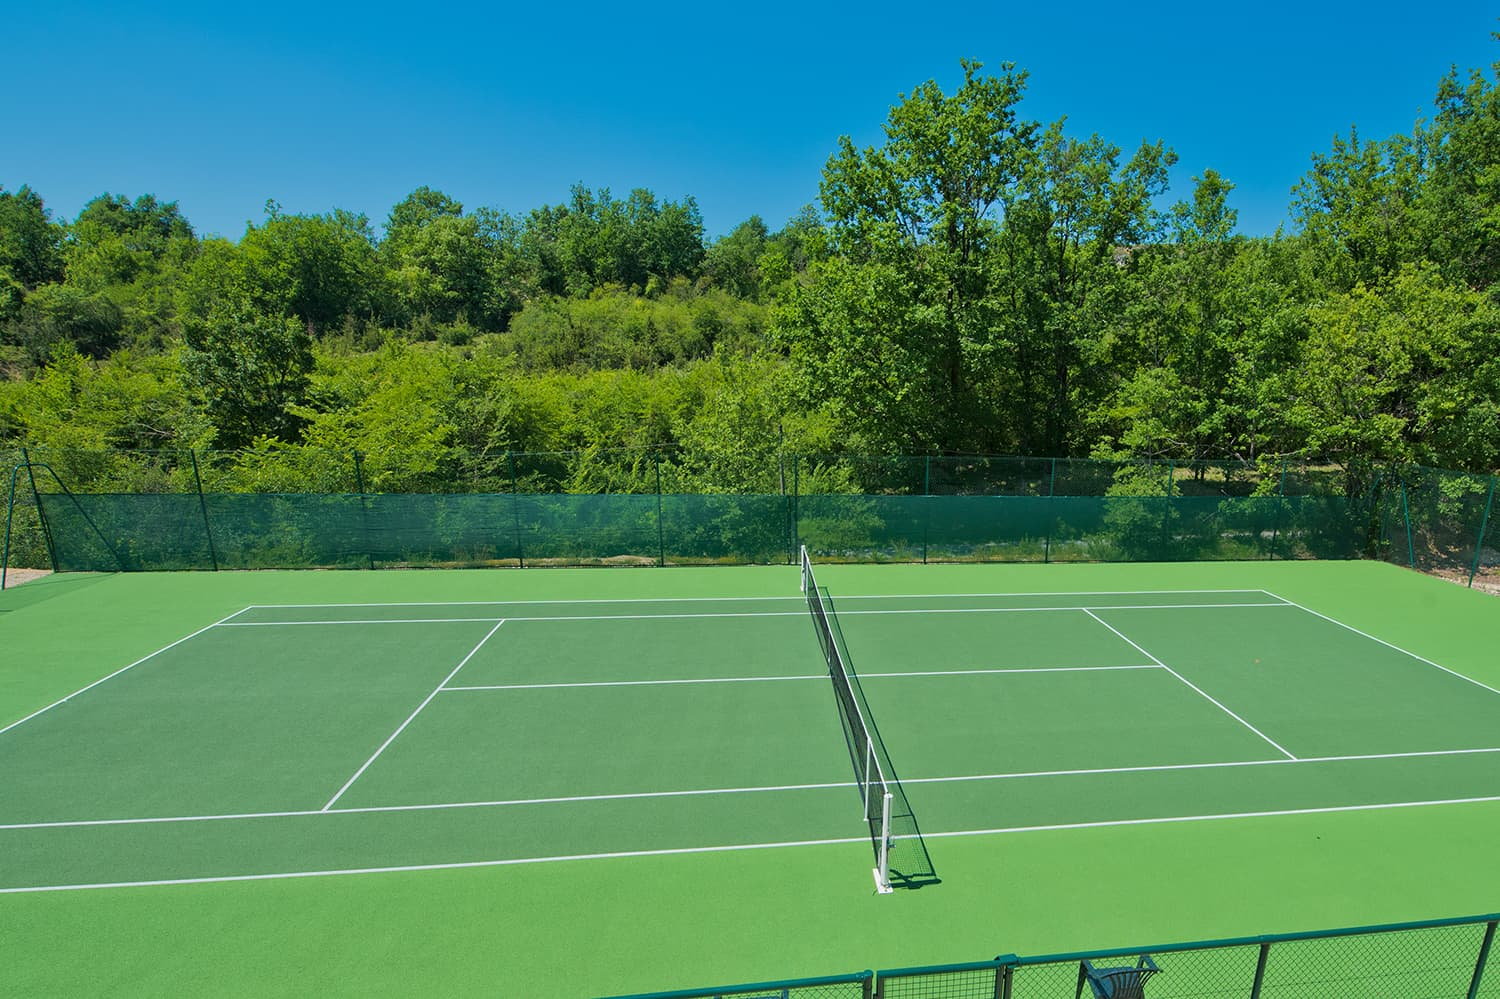 Holiday home in France with private tennis court